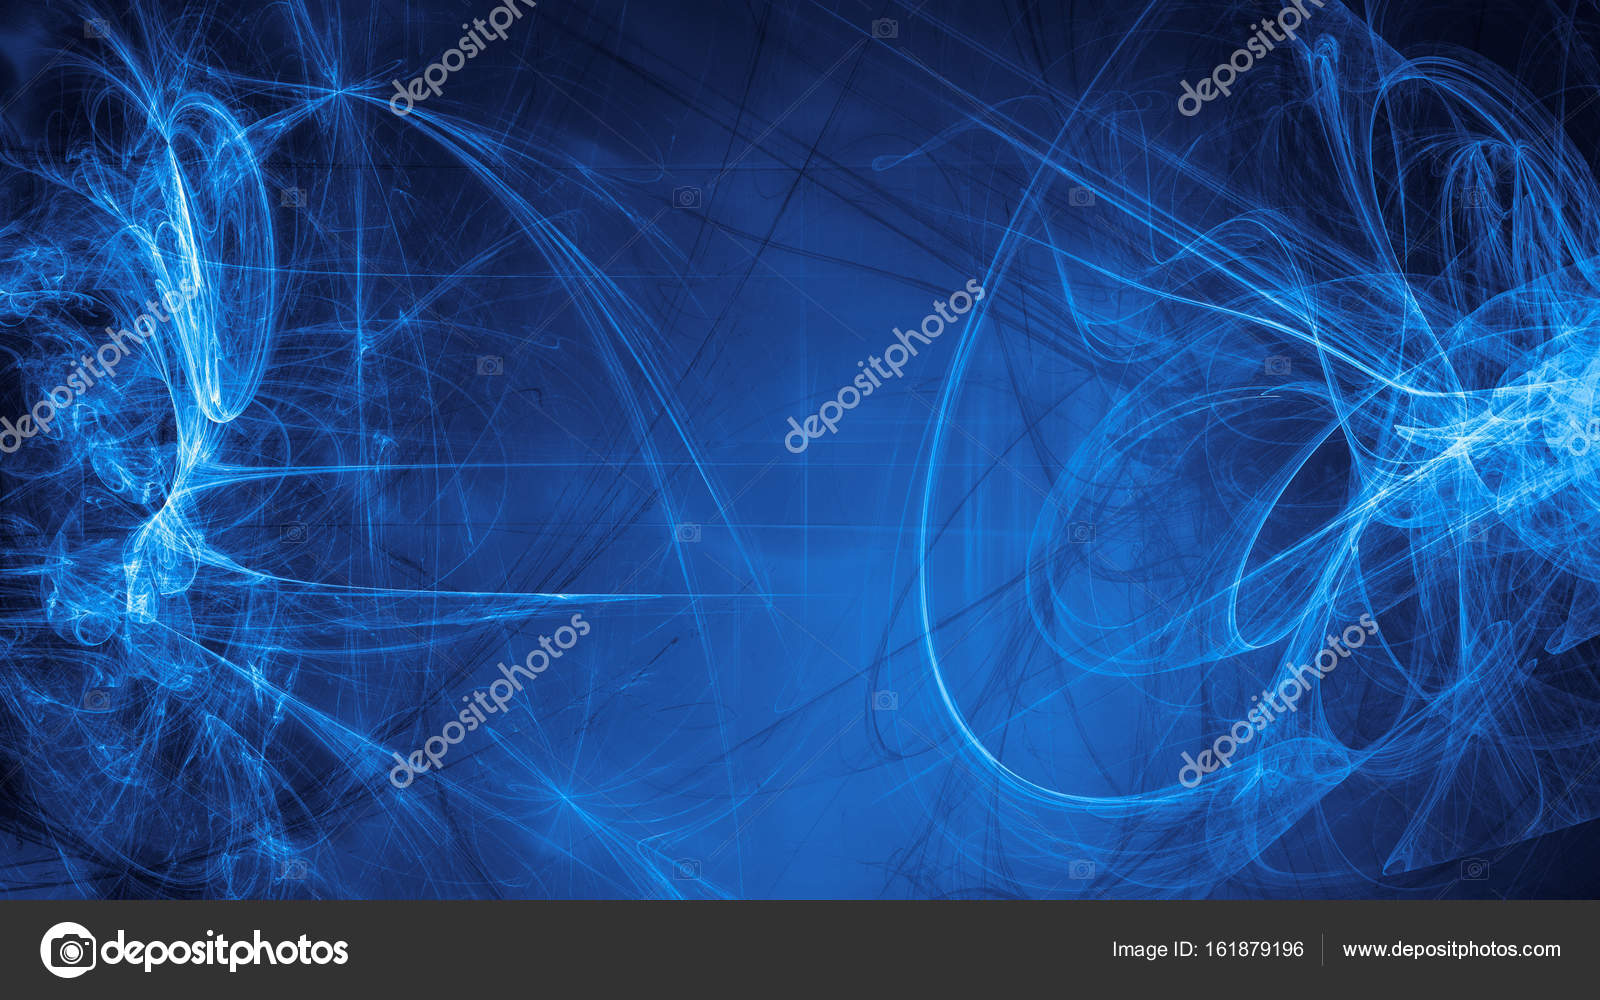 Blue Alien Space Dreams Composite Abstract Background Stock Photo